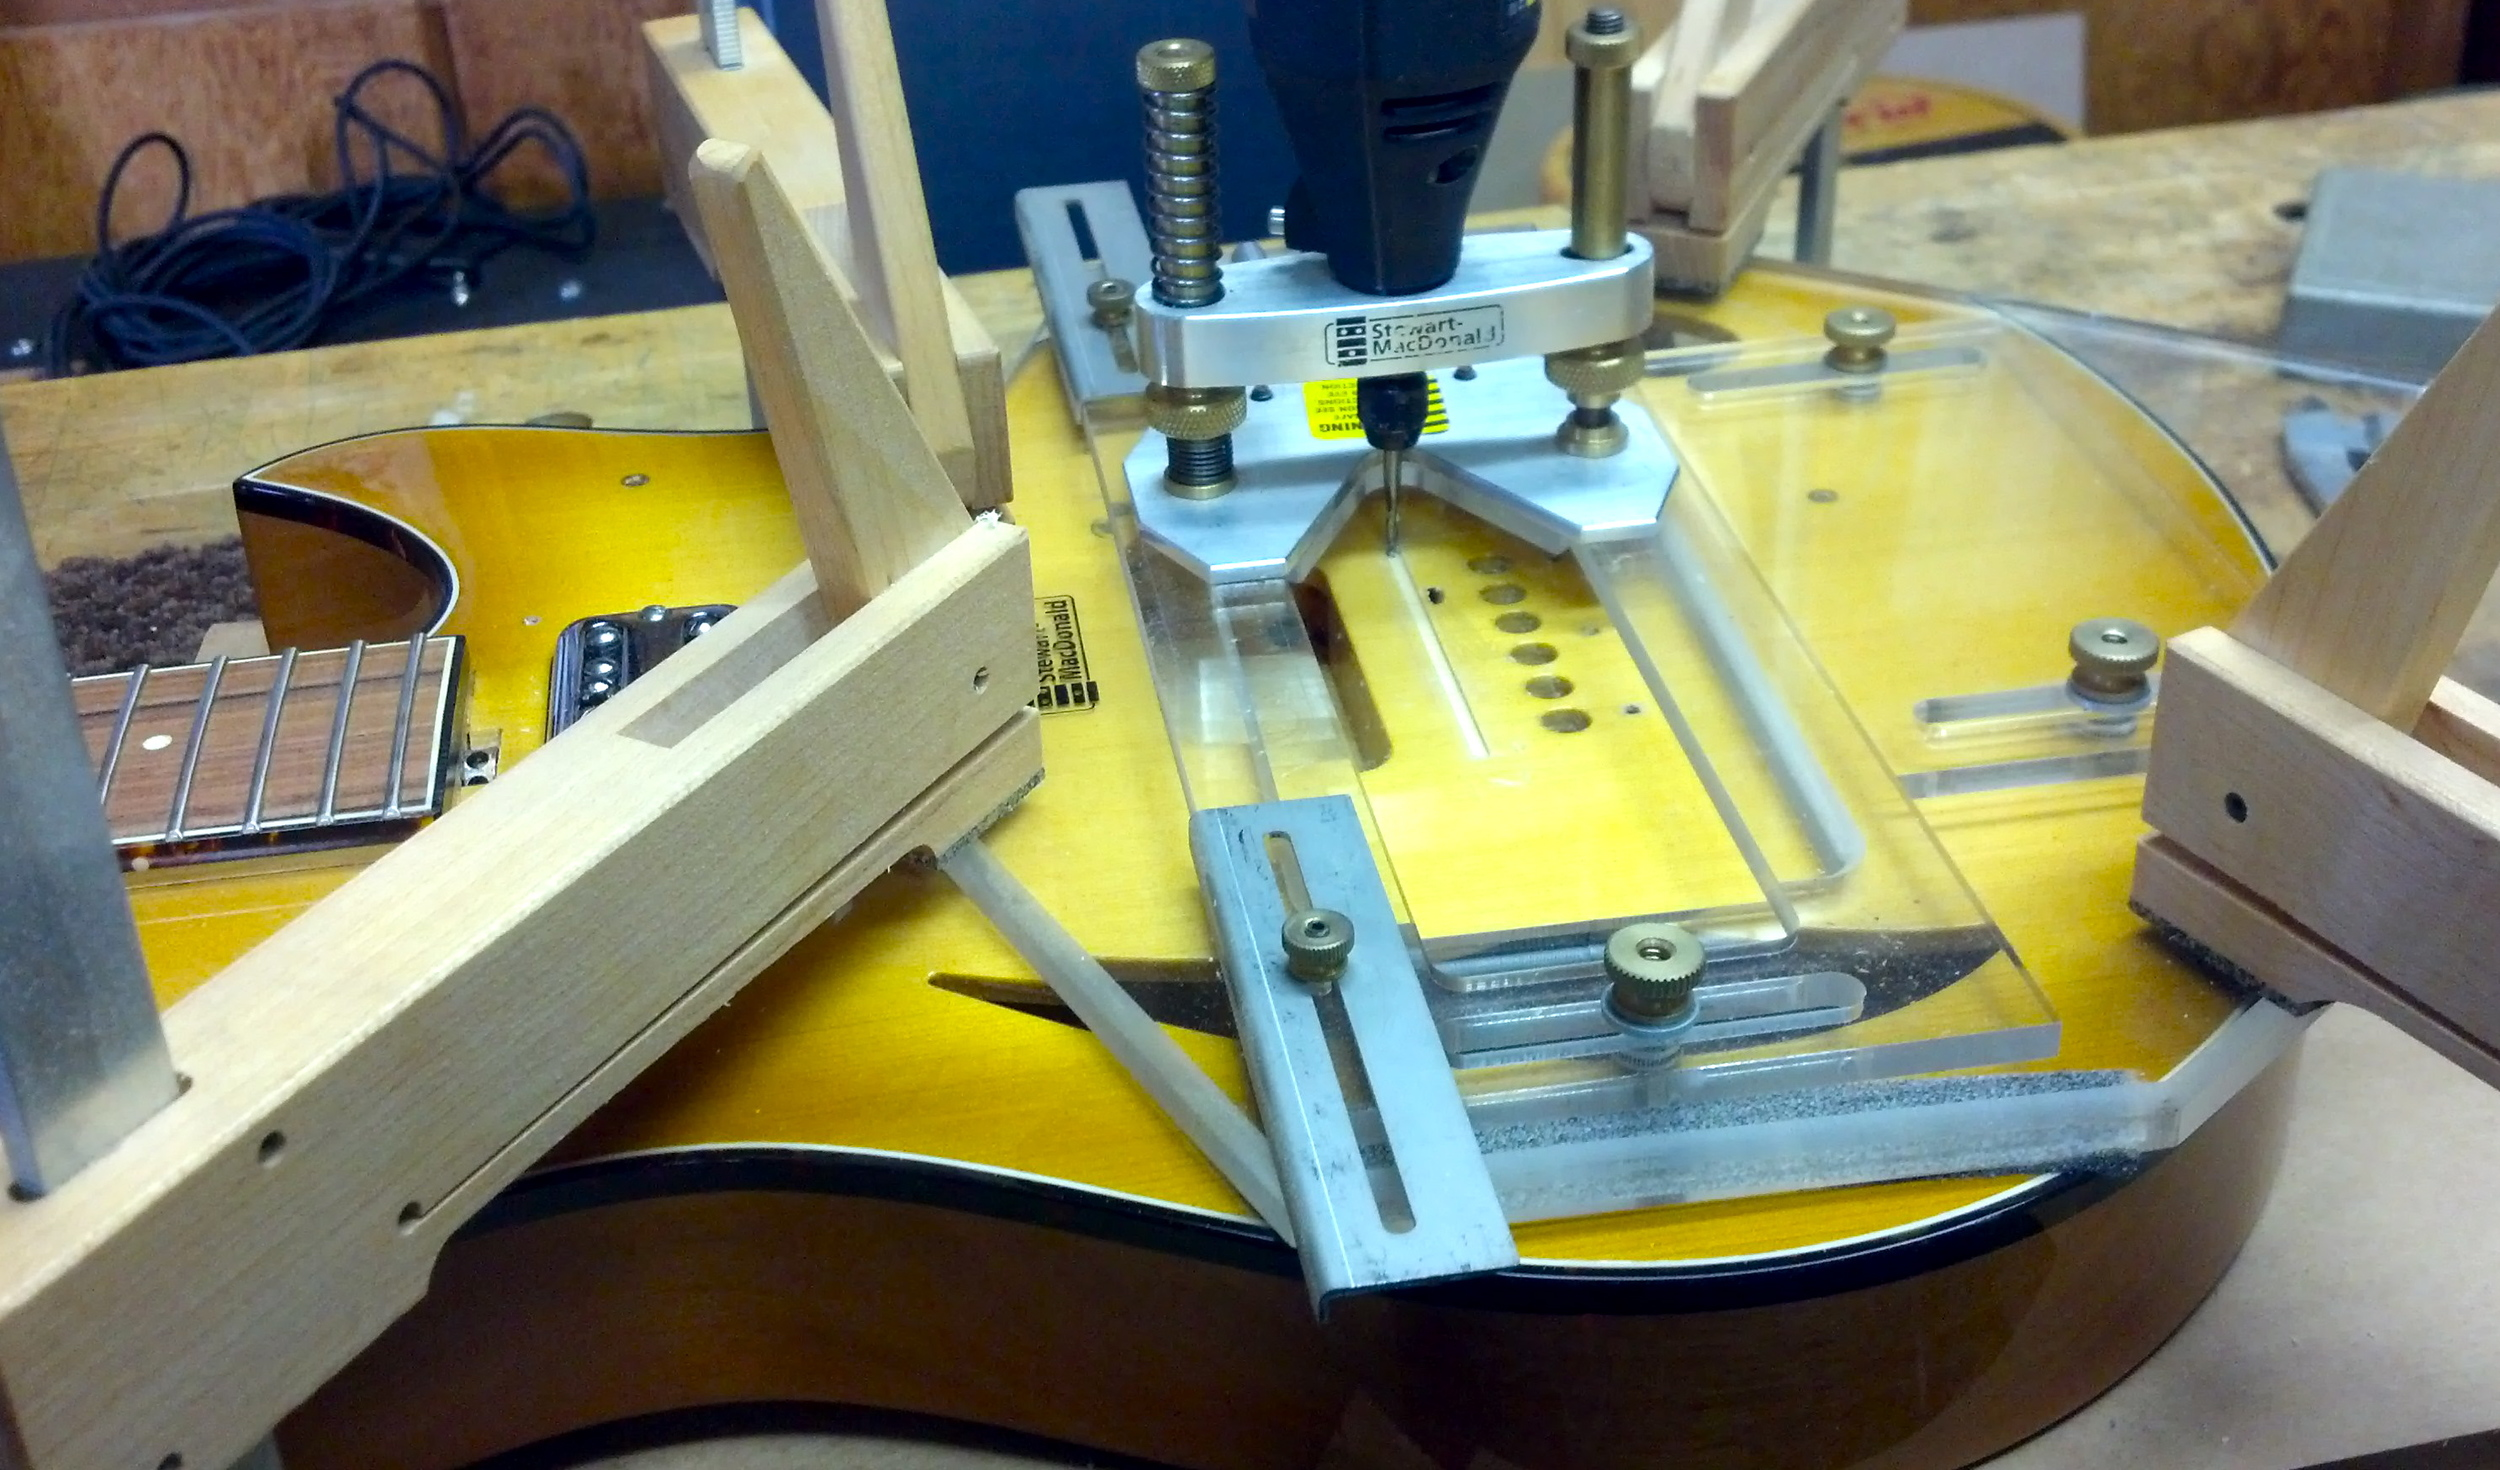 Just after routing the small strip to hold the piezo pickup.